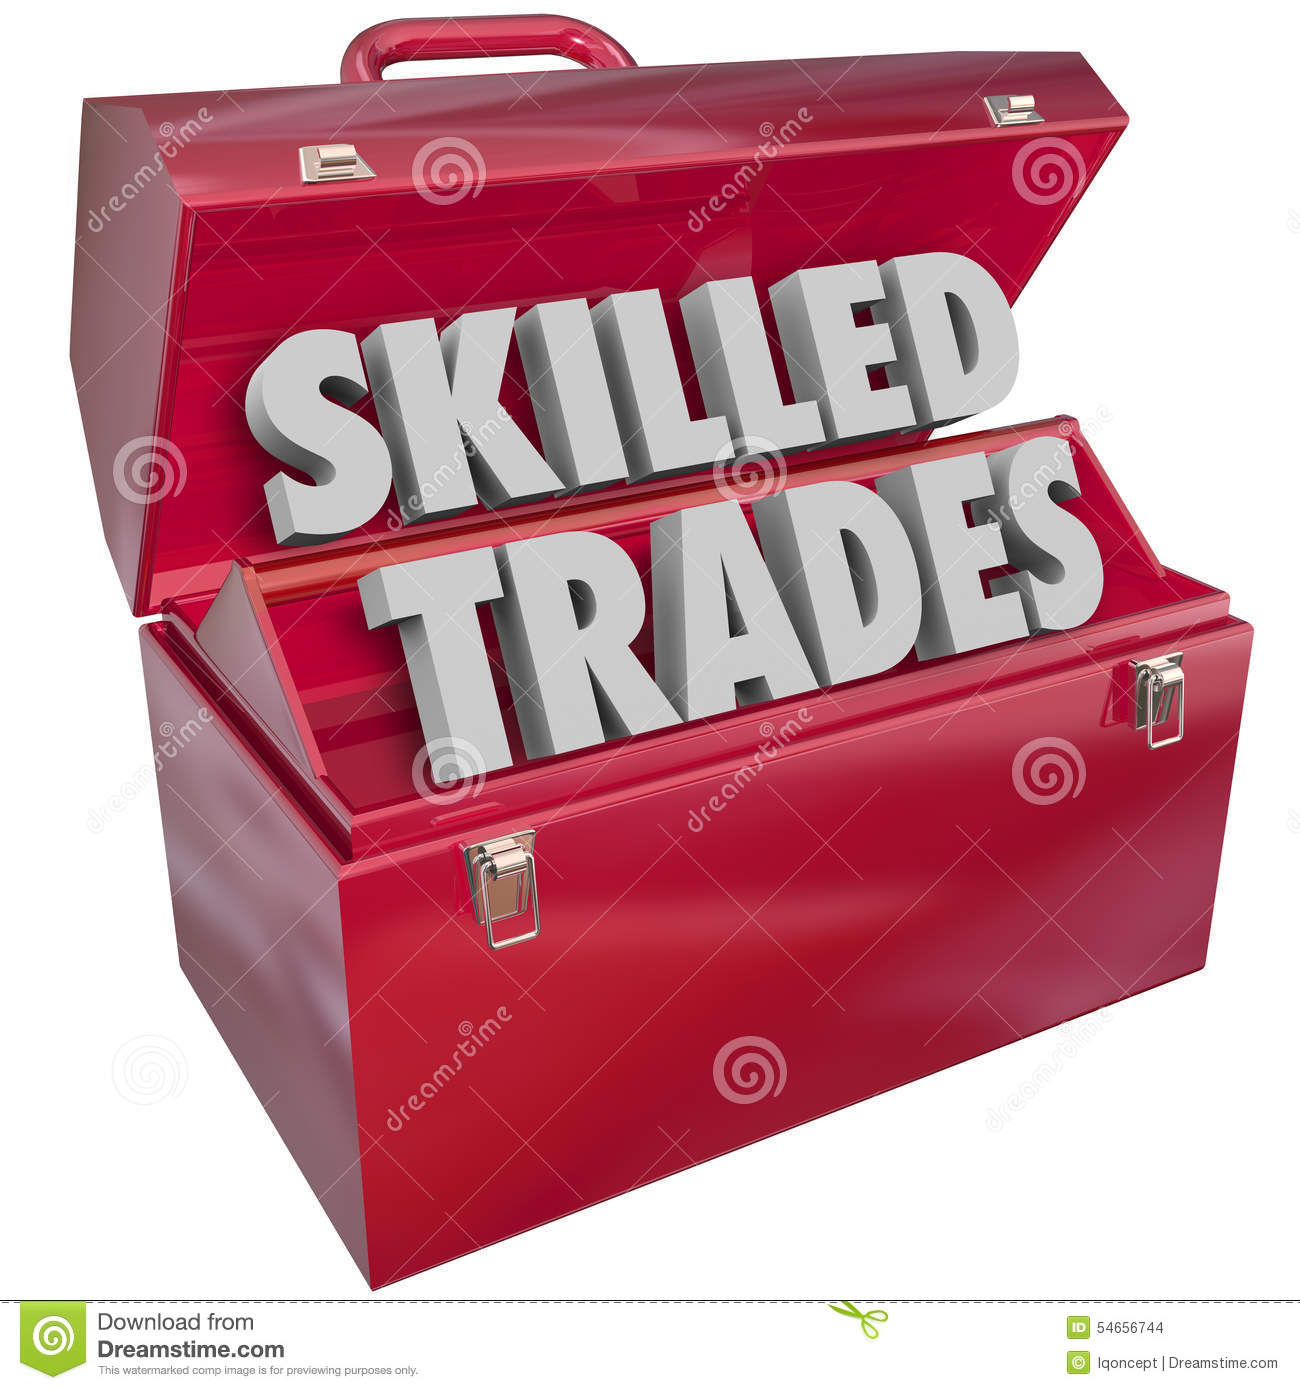 Trades Directory Trades: Skilled Trades Toolbox Technician Mechanic Blue Collar